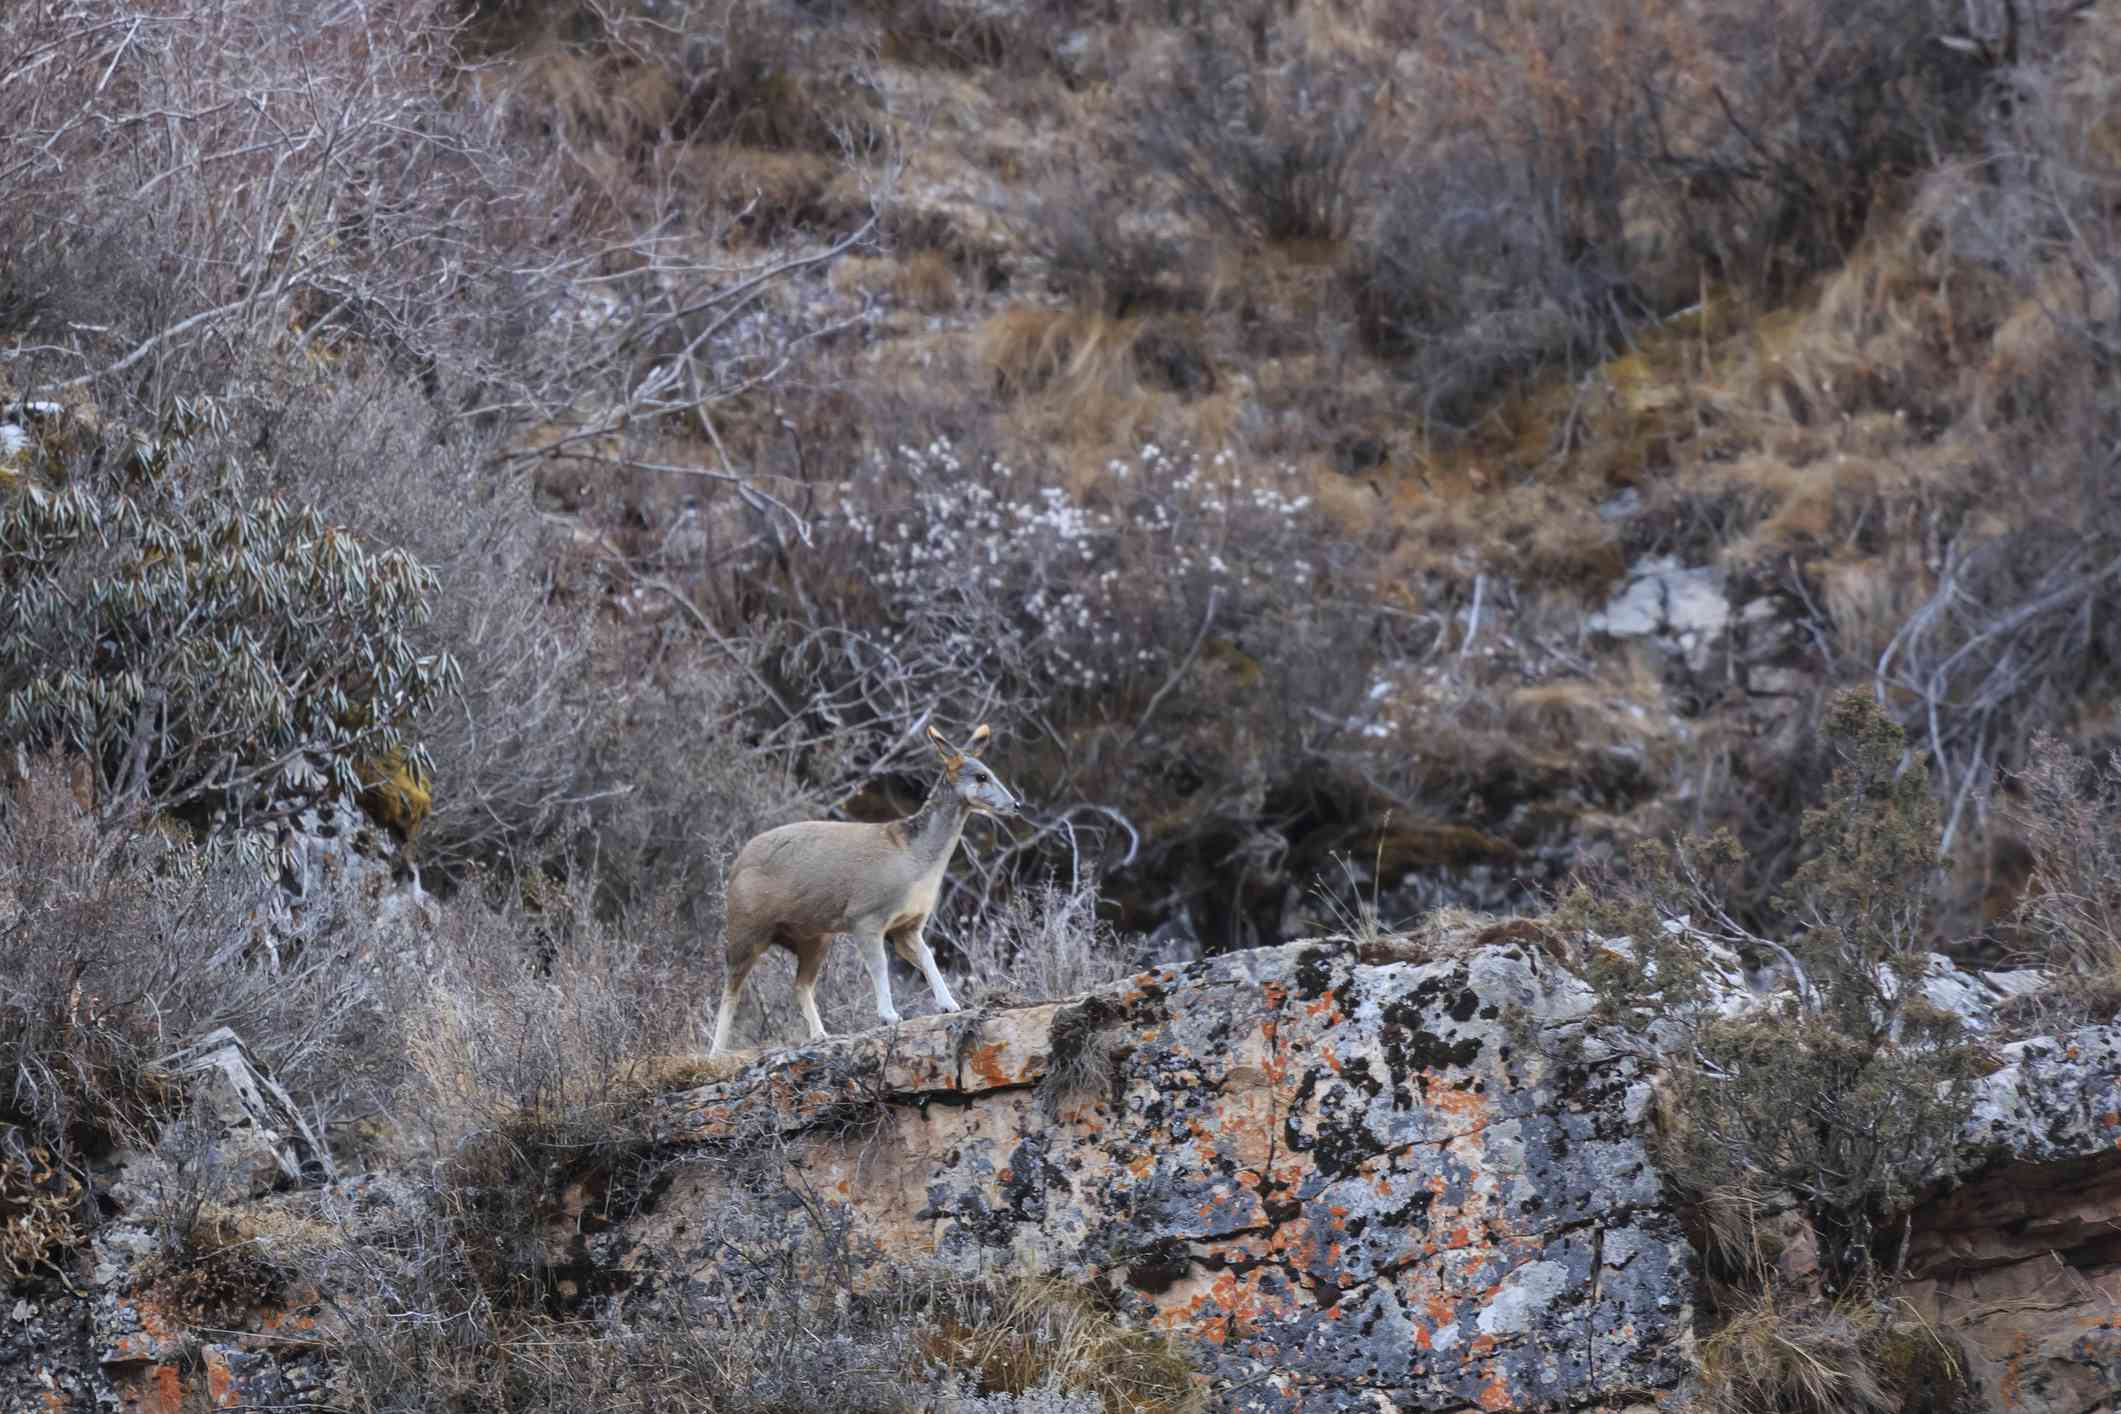 A Himalayan musk deer on a rocky mountainside covered by brown and gray scrub vegetation..